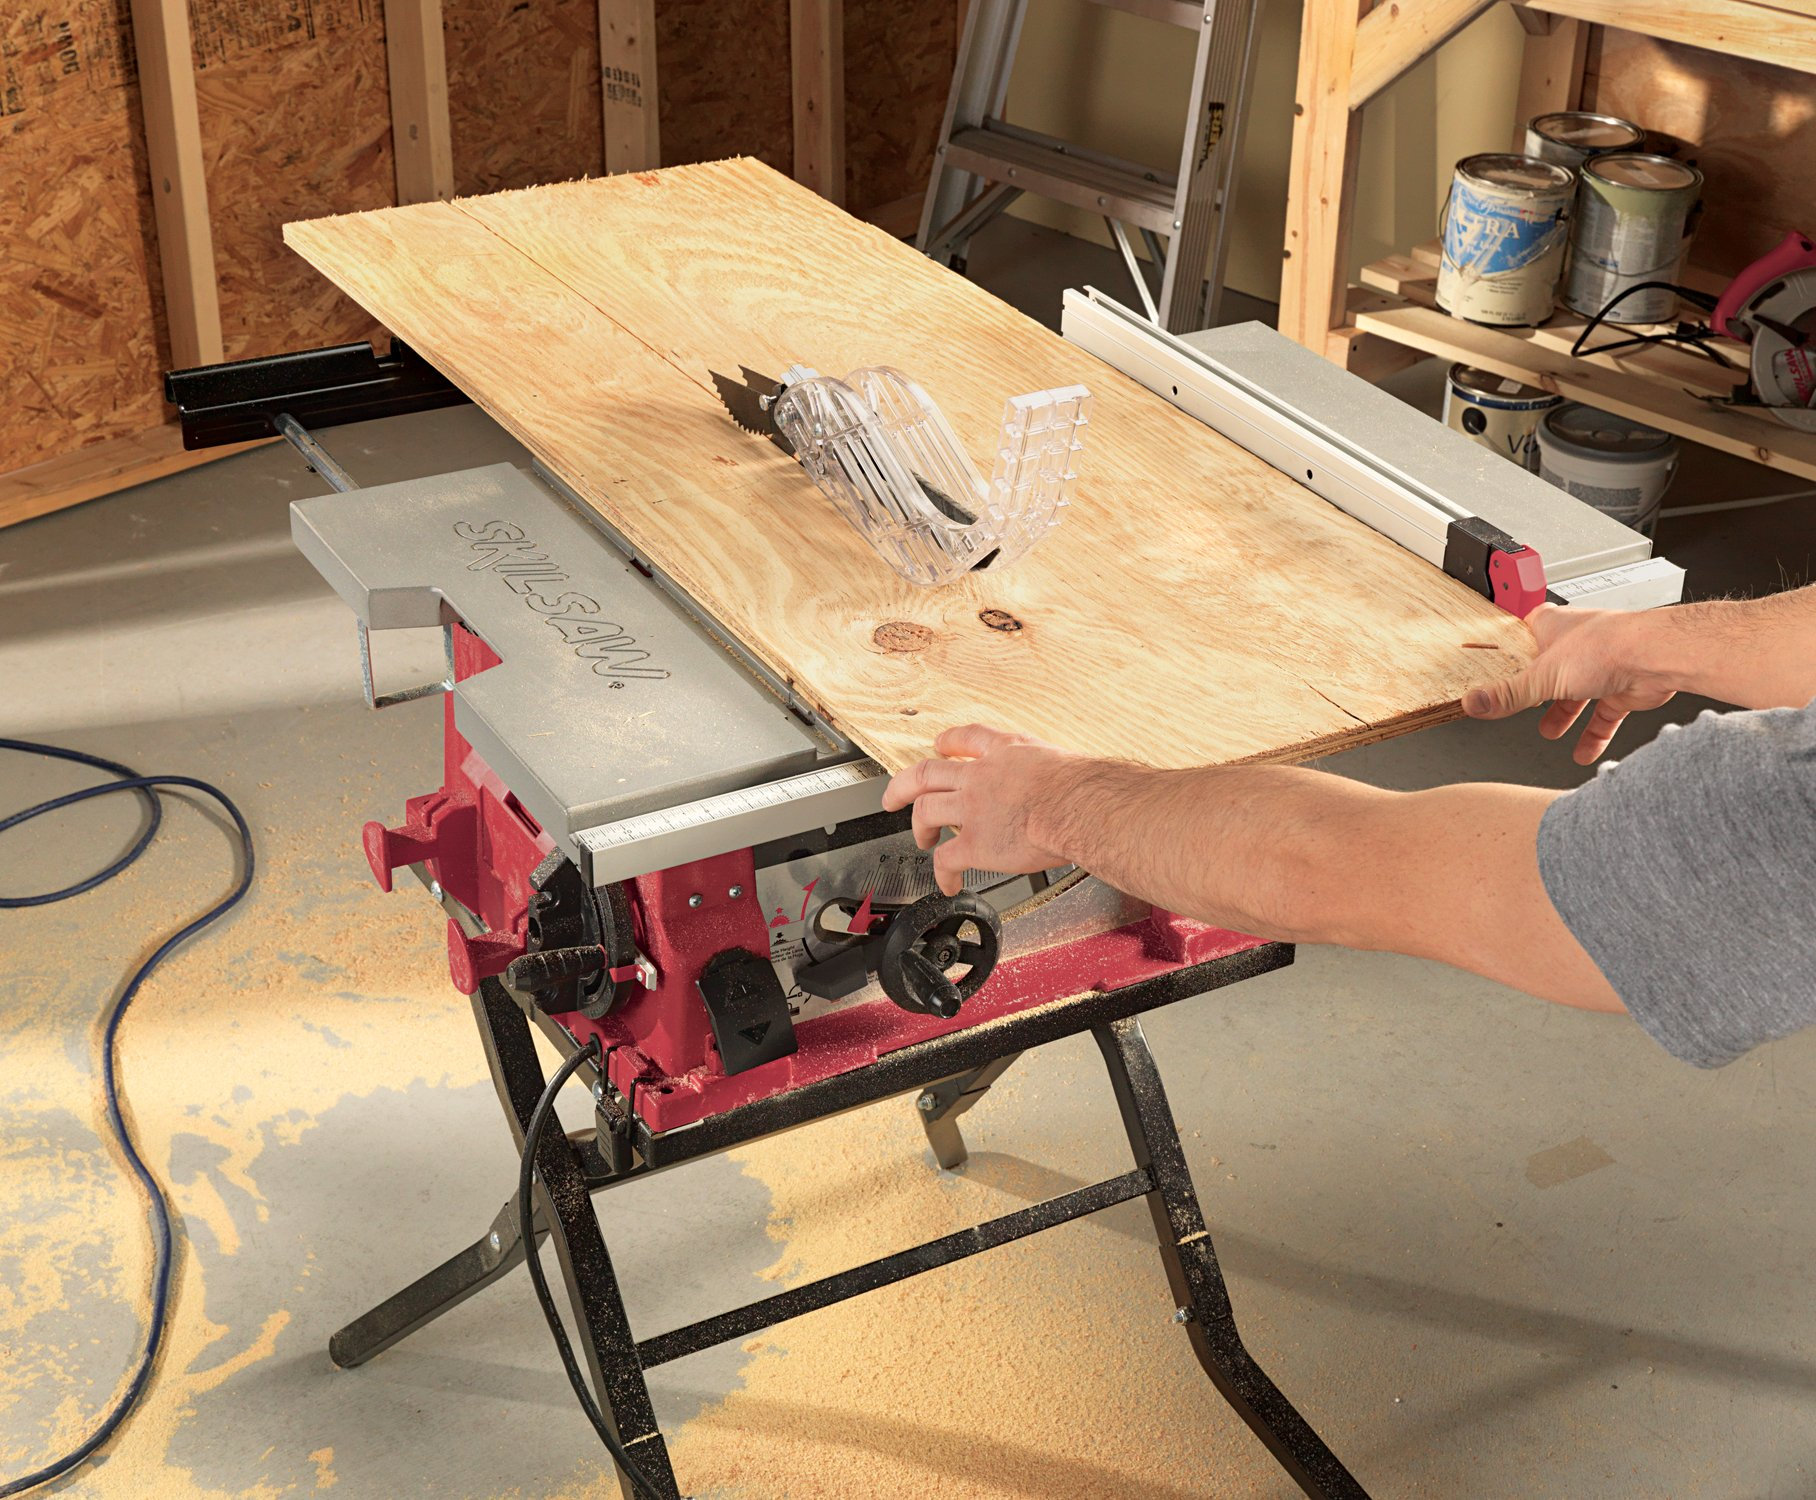 Skil 3410 02 10 inch table saw with folding stand ebay for 10 inch skil table saw